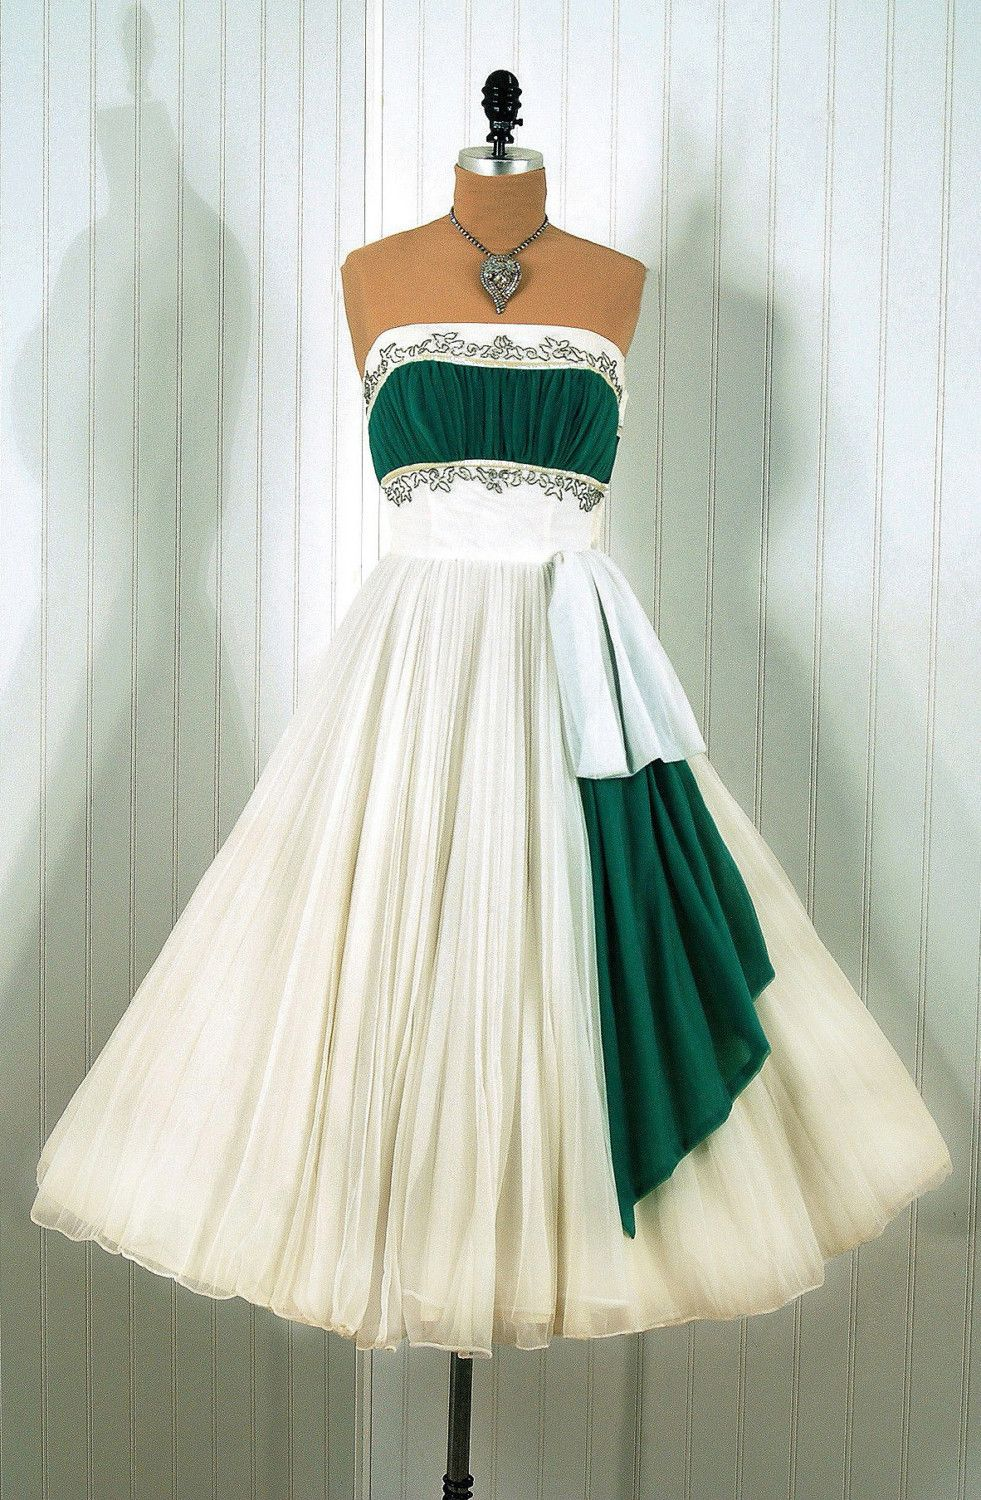 Tinkerbell, omgthatdress: dress 1950s timeless vixen... | Gimme ...